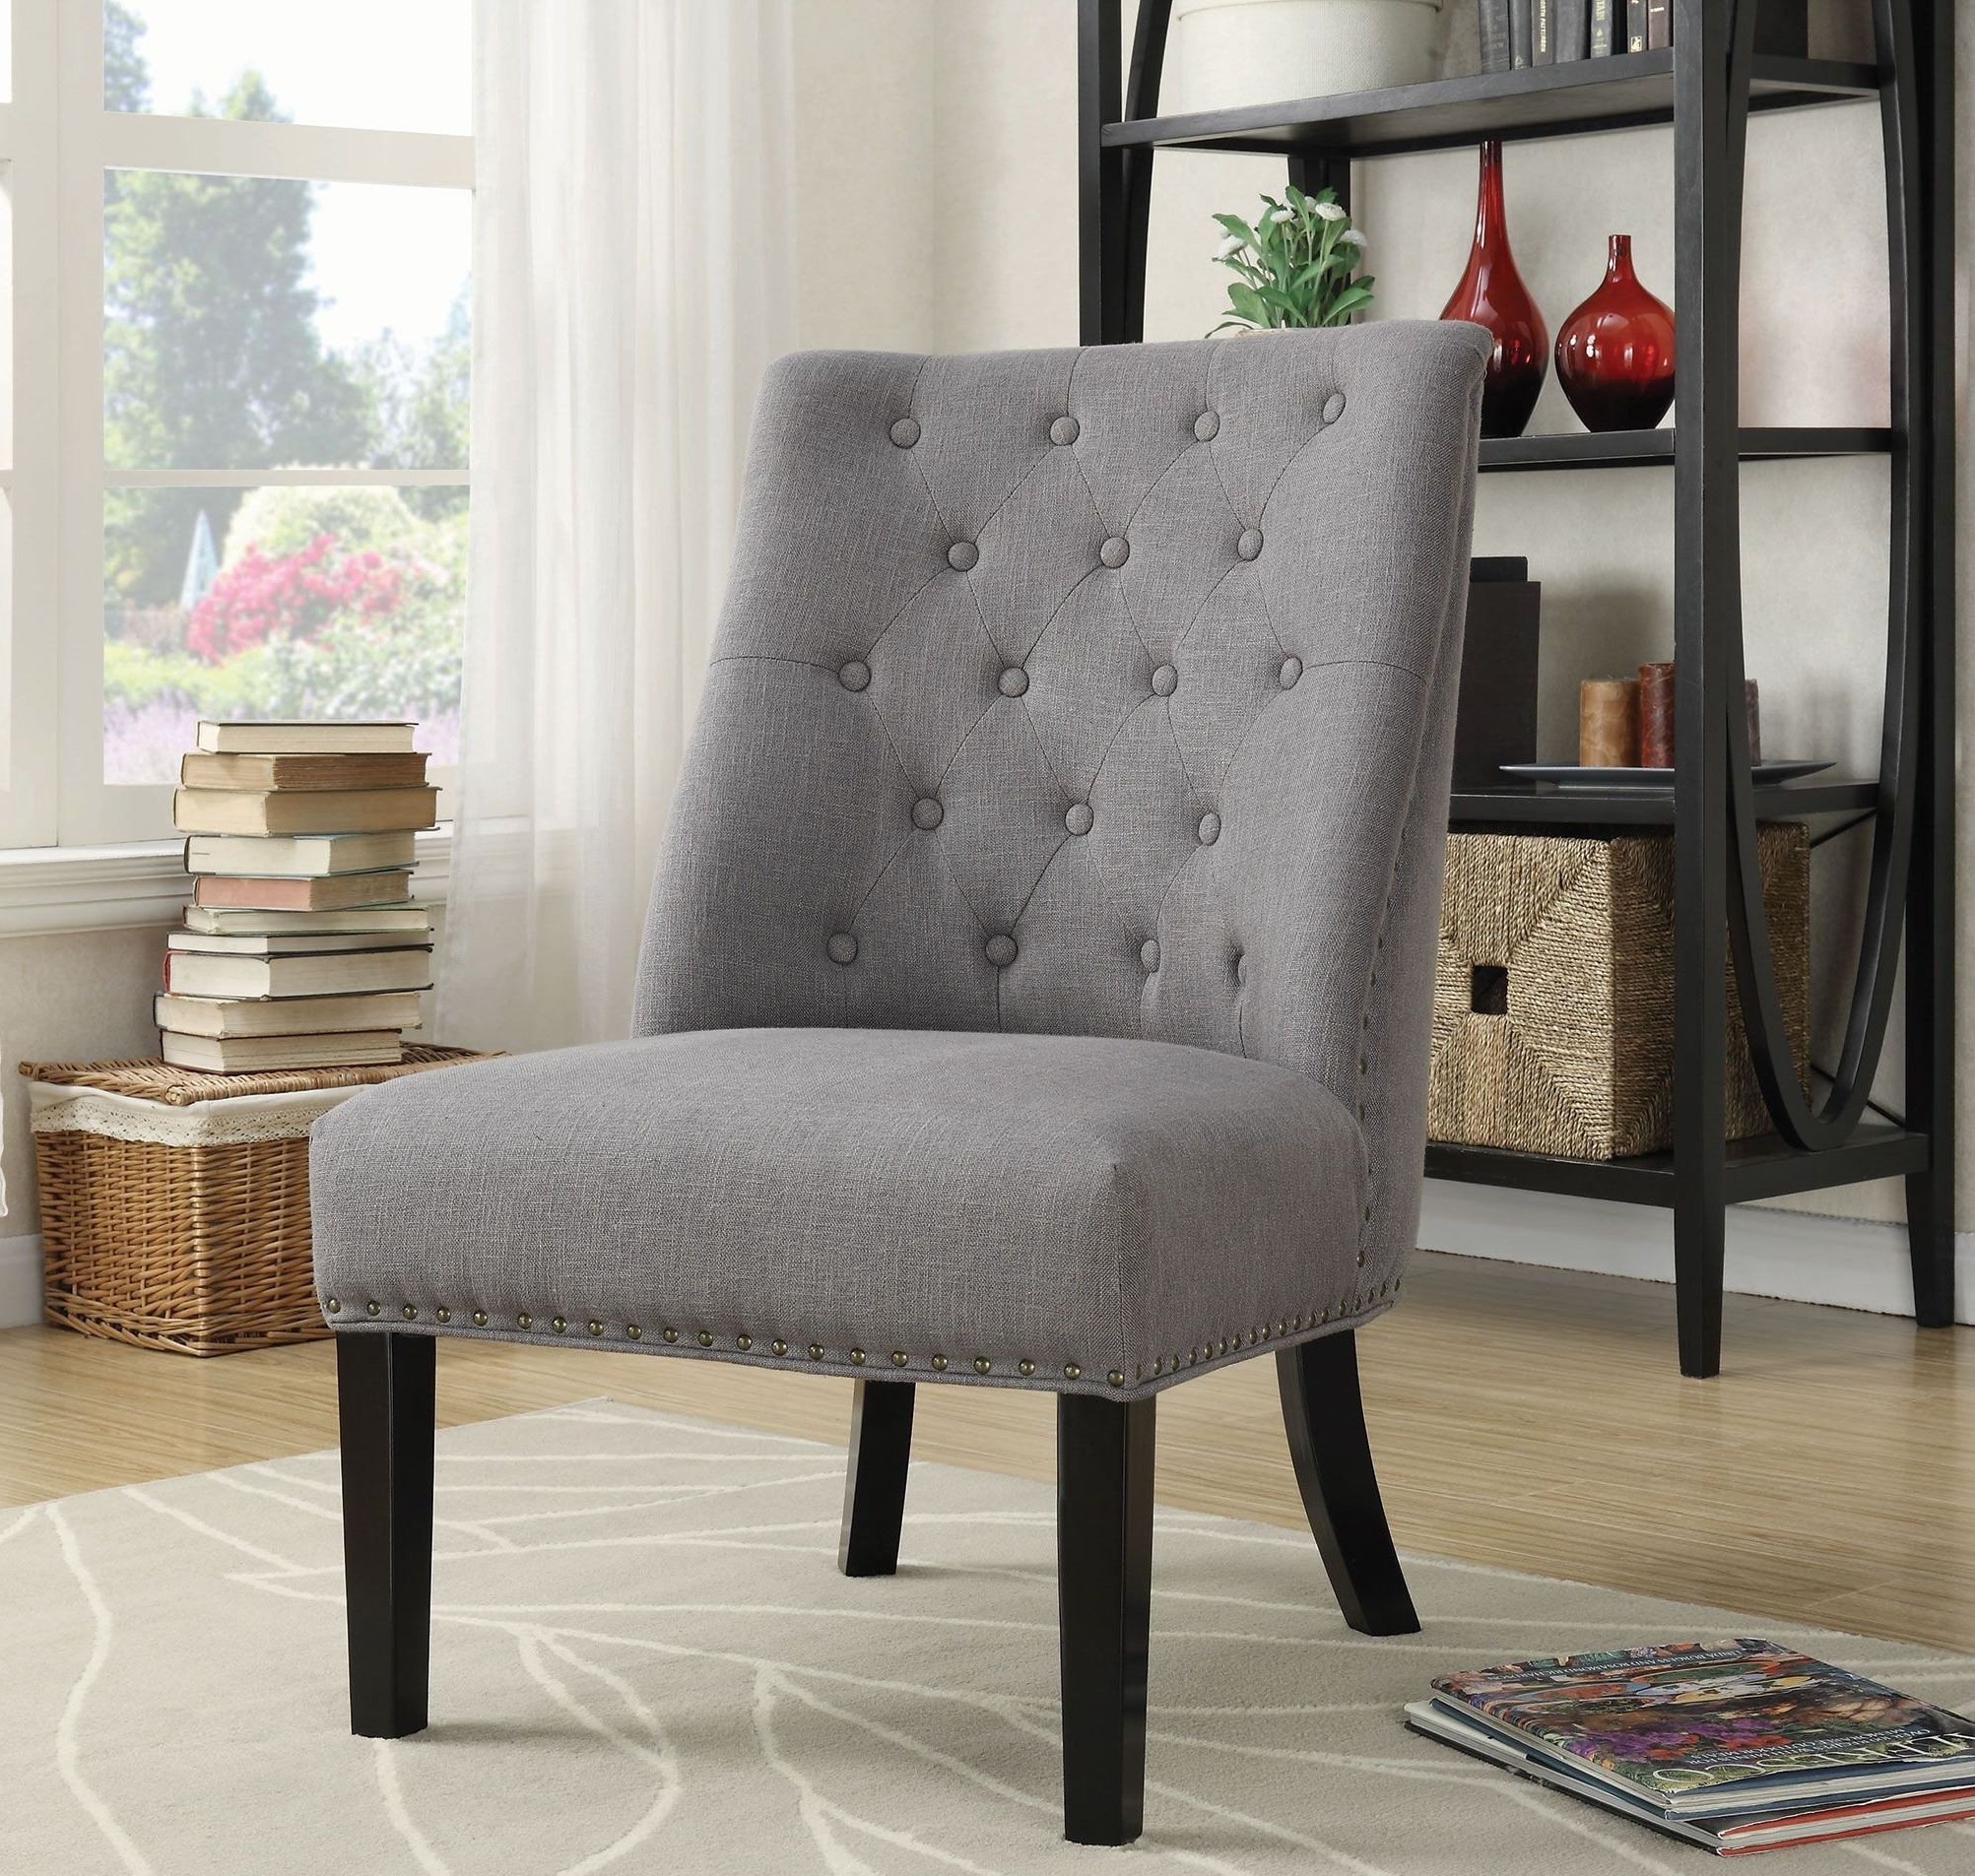 902923 Grey And Black Accent Chair From Coaster Coleman